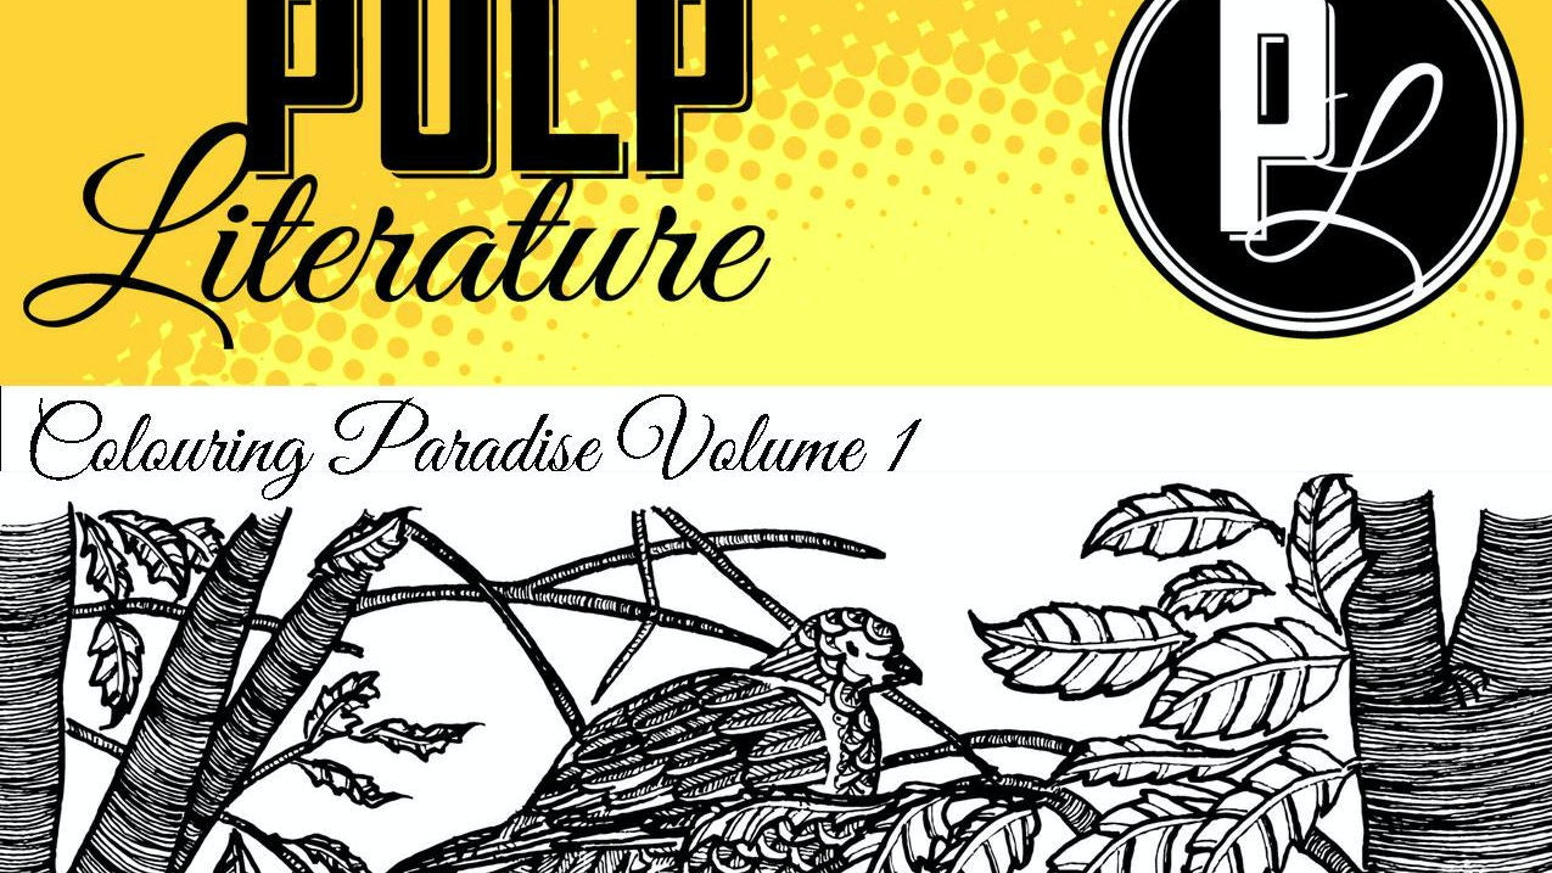 A coloring book for adults or kids, with stunning illustrations by Mel Anastasiou from the pages of Pulp Literature Year One!